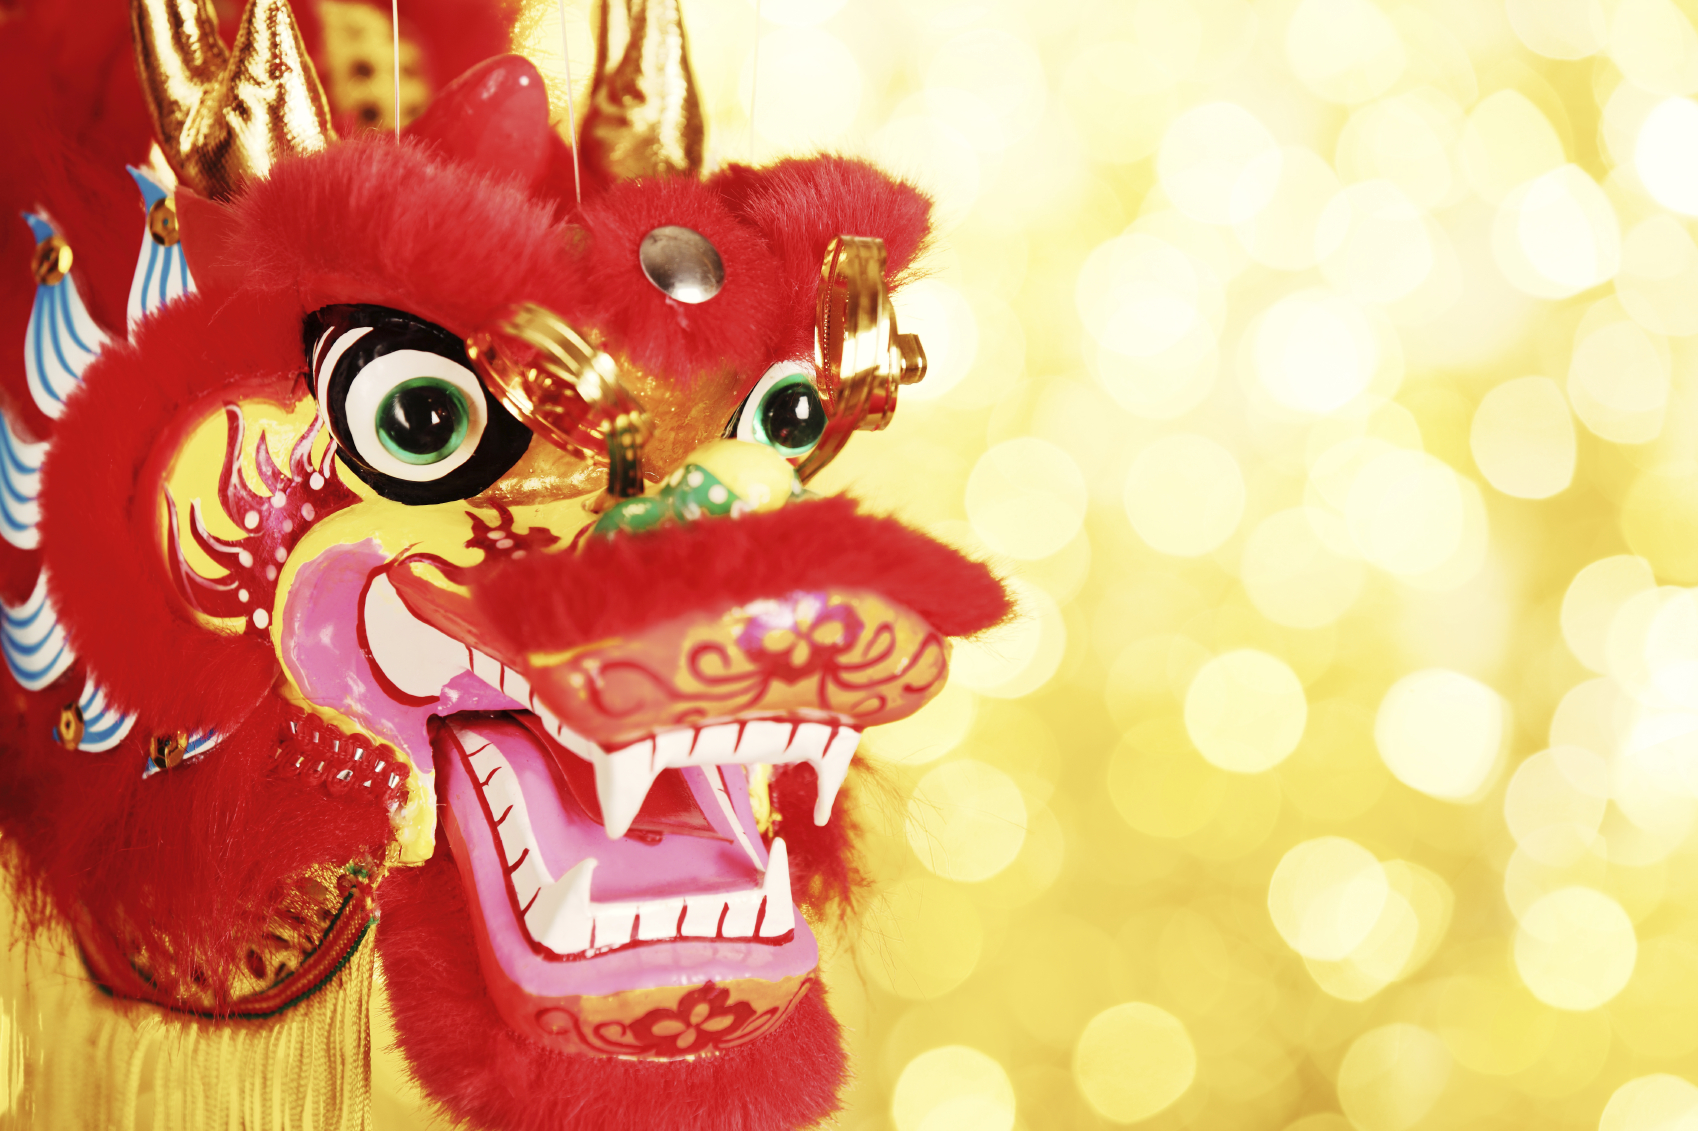 Chinese New Year For Ks1 And Ks2 Children Chinese New Year